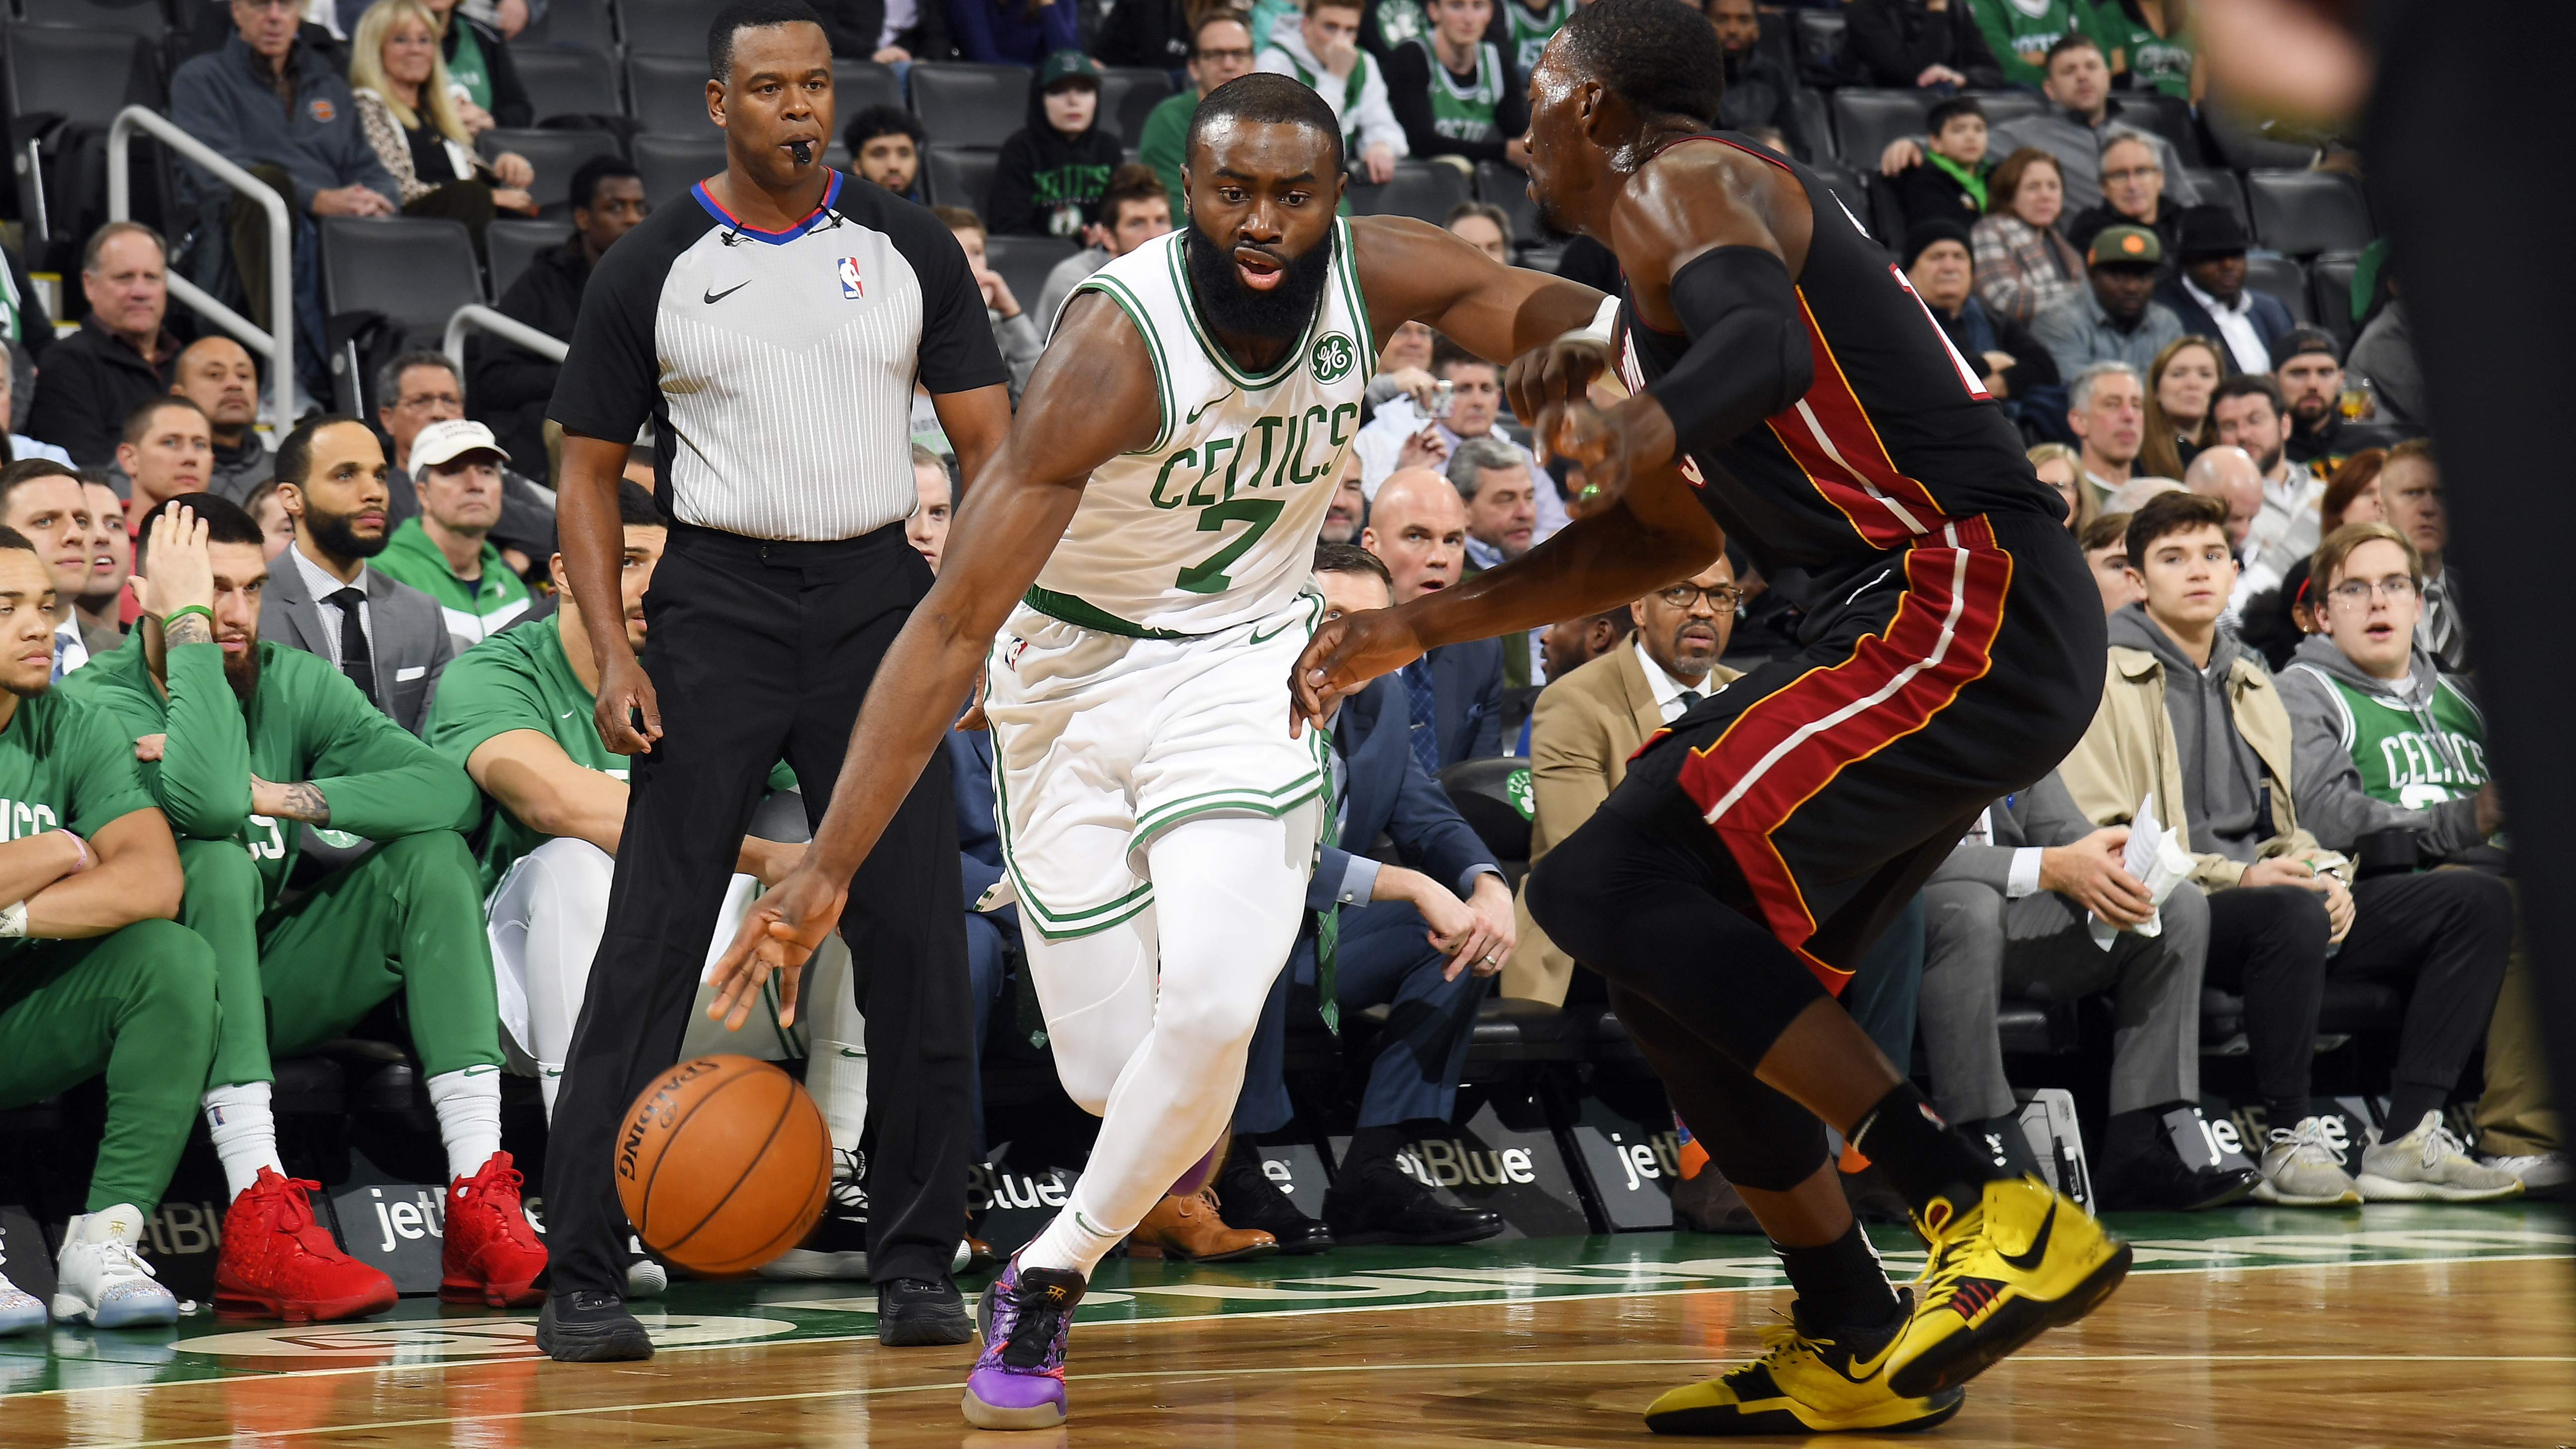 05.12.19. Обзор. GAME RECAP: Celtics 112, Heat 93